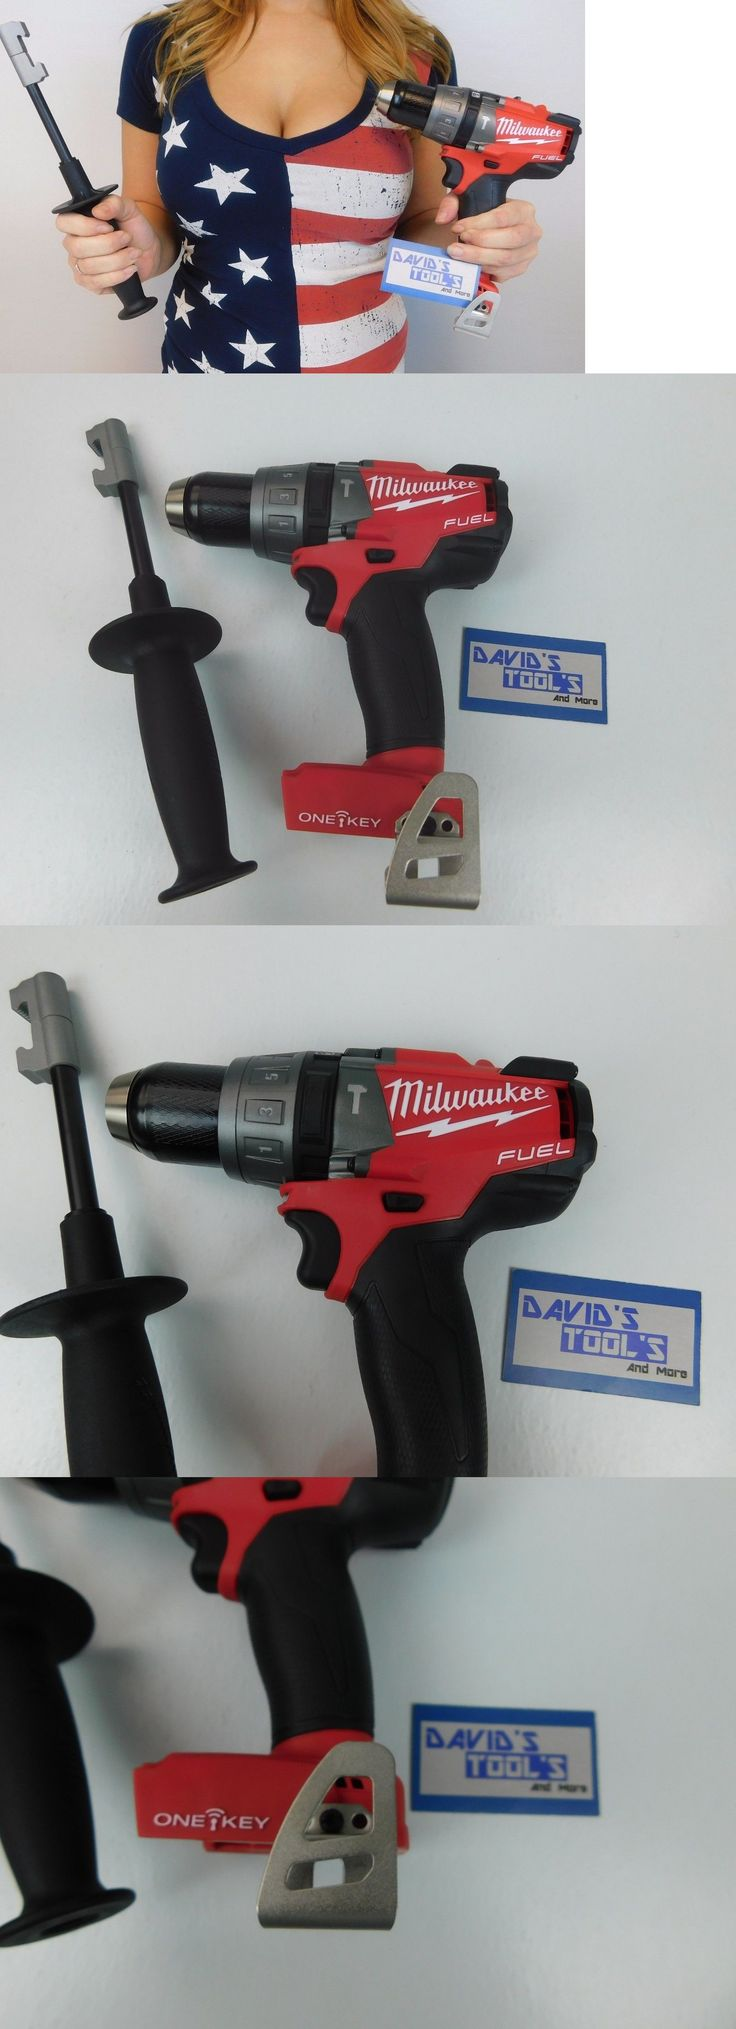 tools: New Milwaukee 2706-20 M18 Fuel One-Key 18V Brushless 1/2 Cordless Hammer Drill -> BUY IT NOW ONLY: $135.55 on eBay!